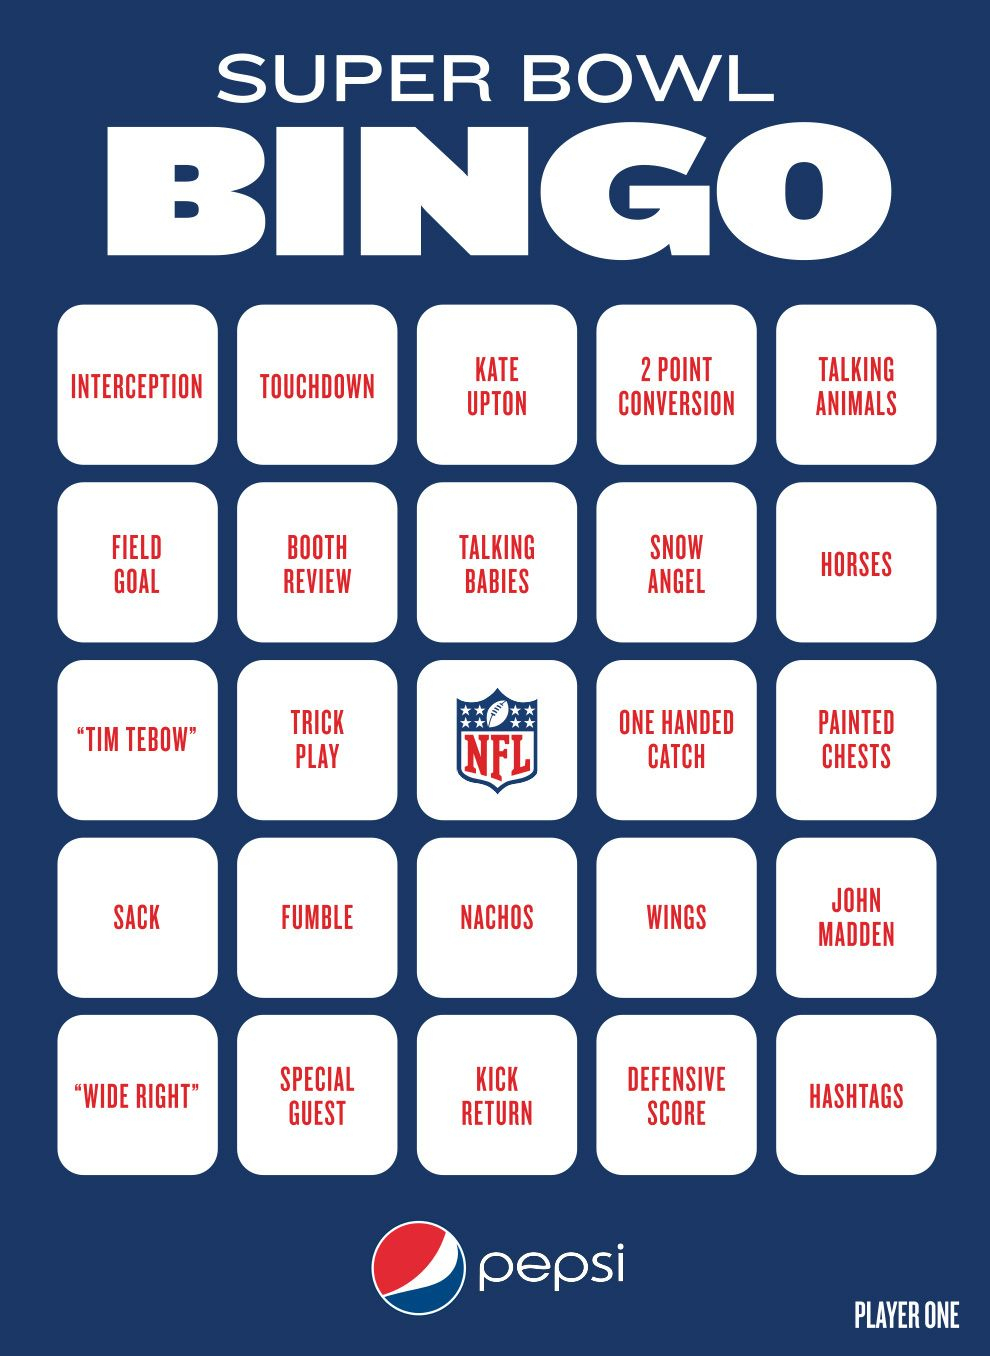 Super Bowl Bingo To Play During The Big Game (With Images